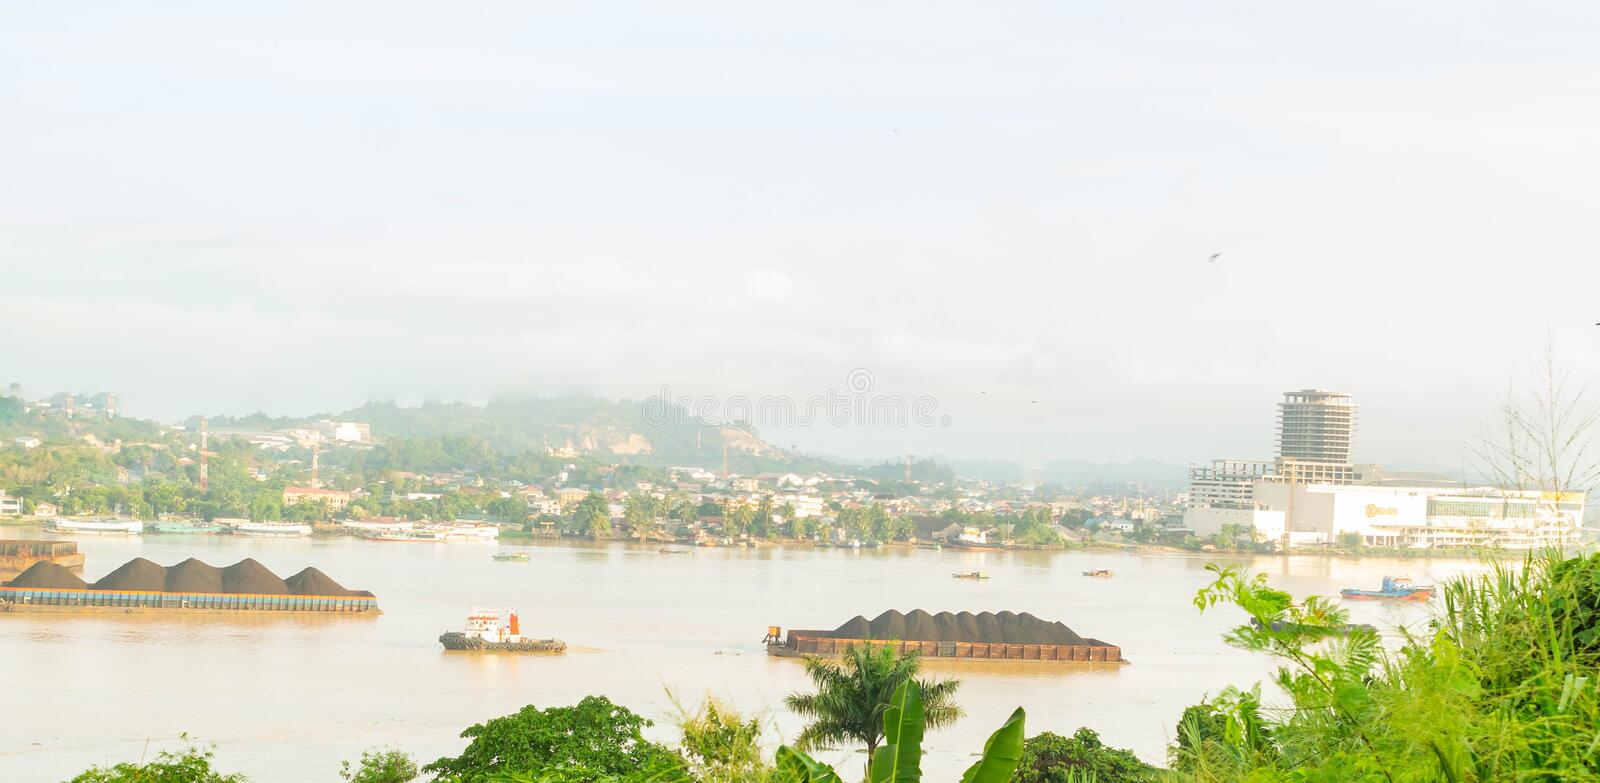 Beautiful view of traffic of tugboats pulling barge of coal at Mahakam River, Samarinda, Indonesia. Mining and cargo industry background stock photography